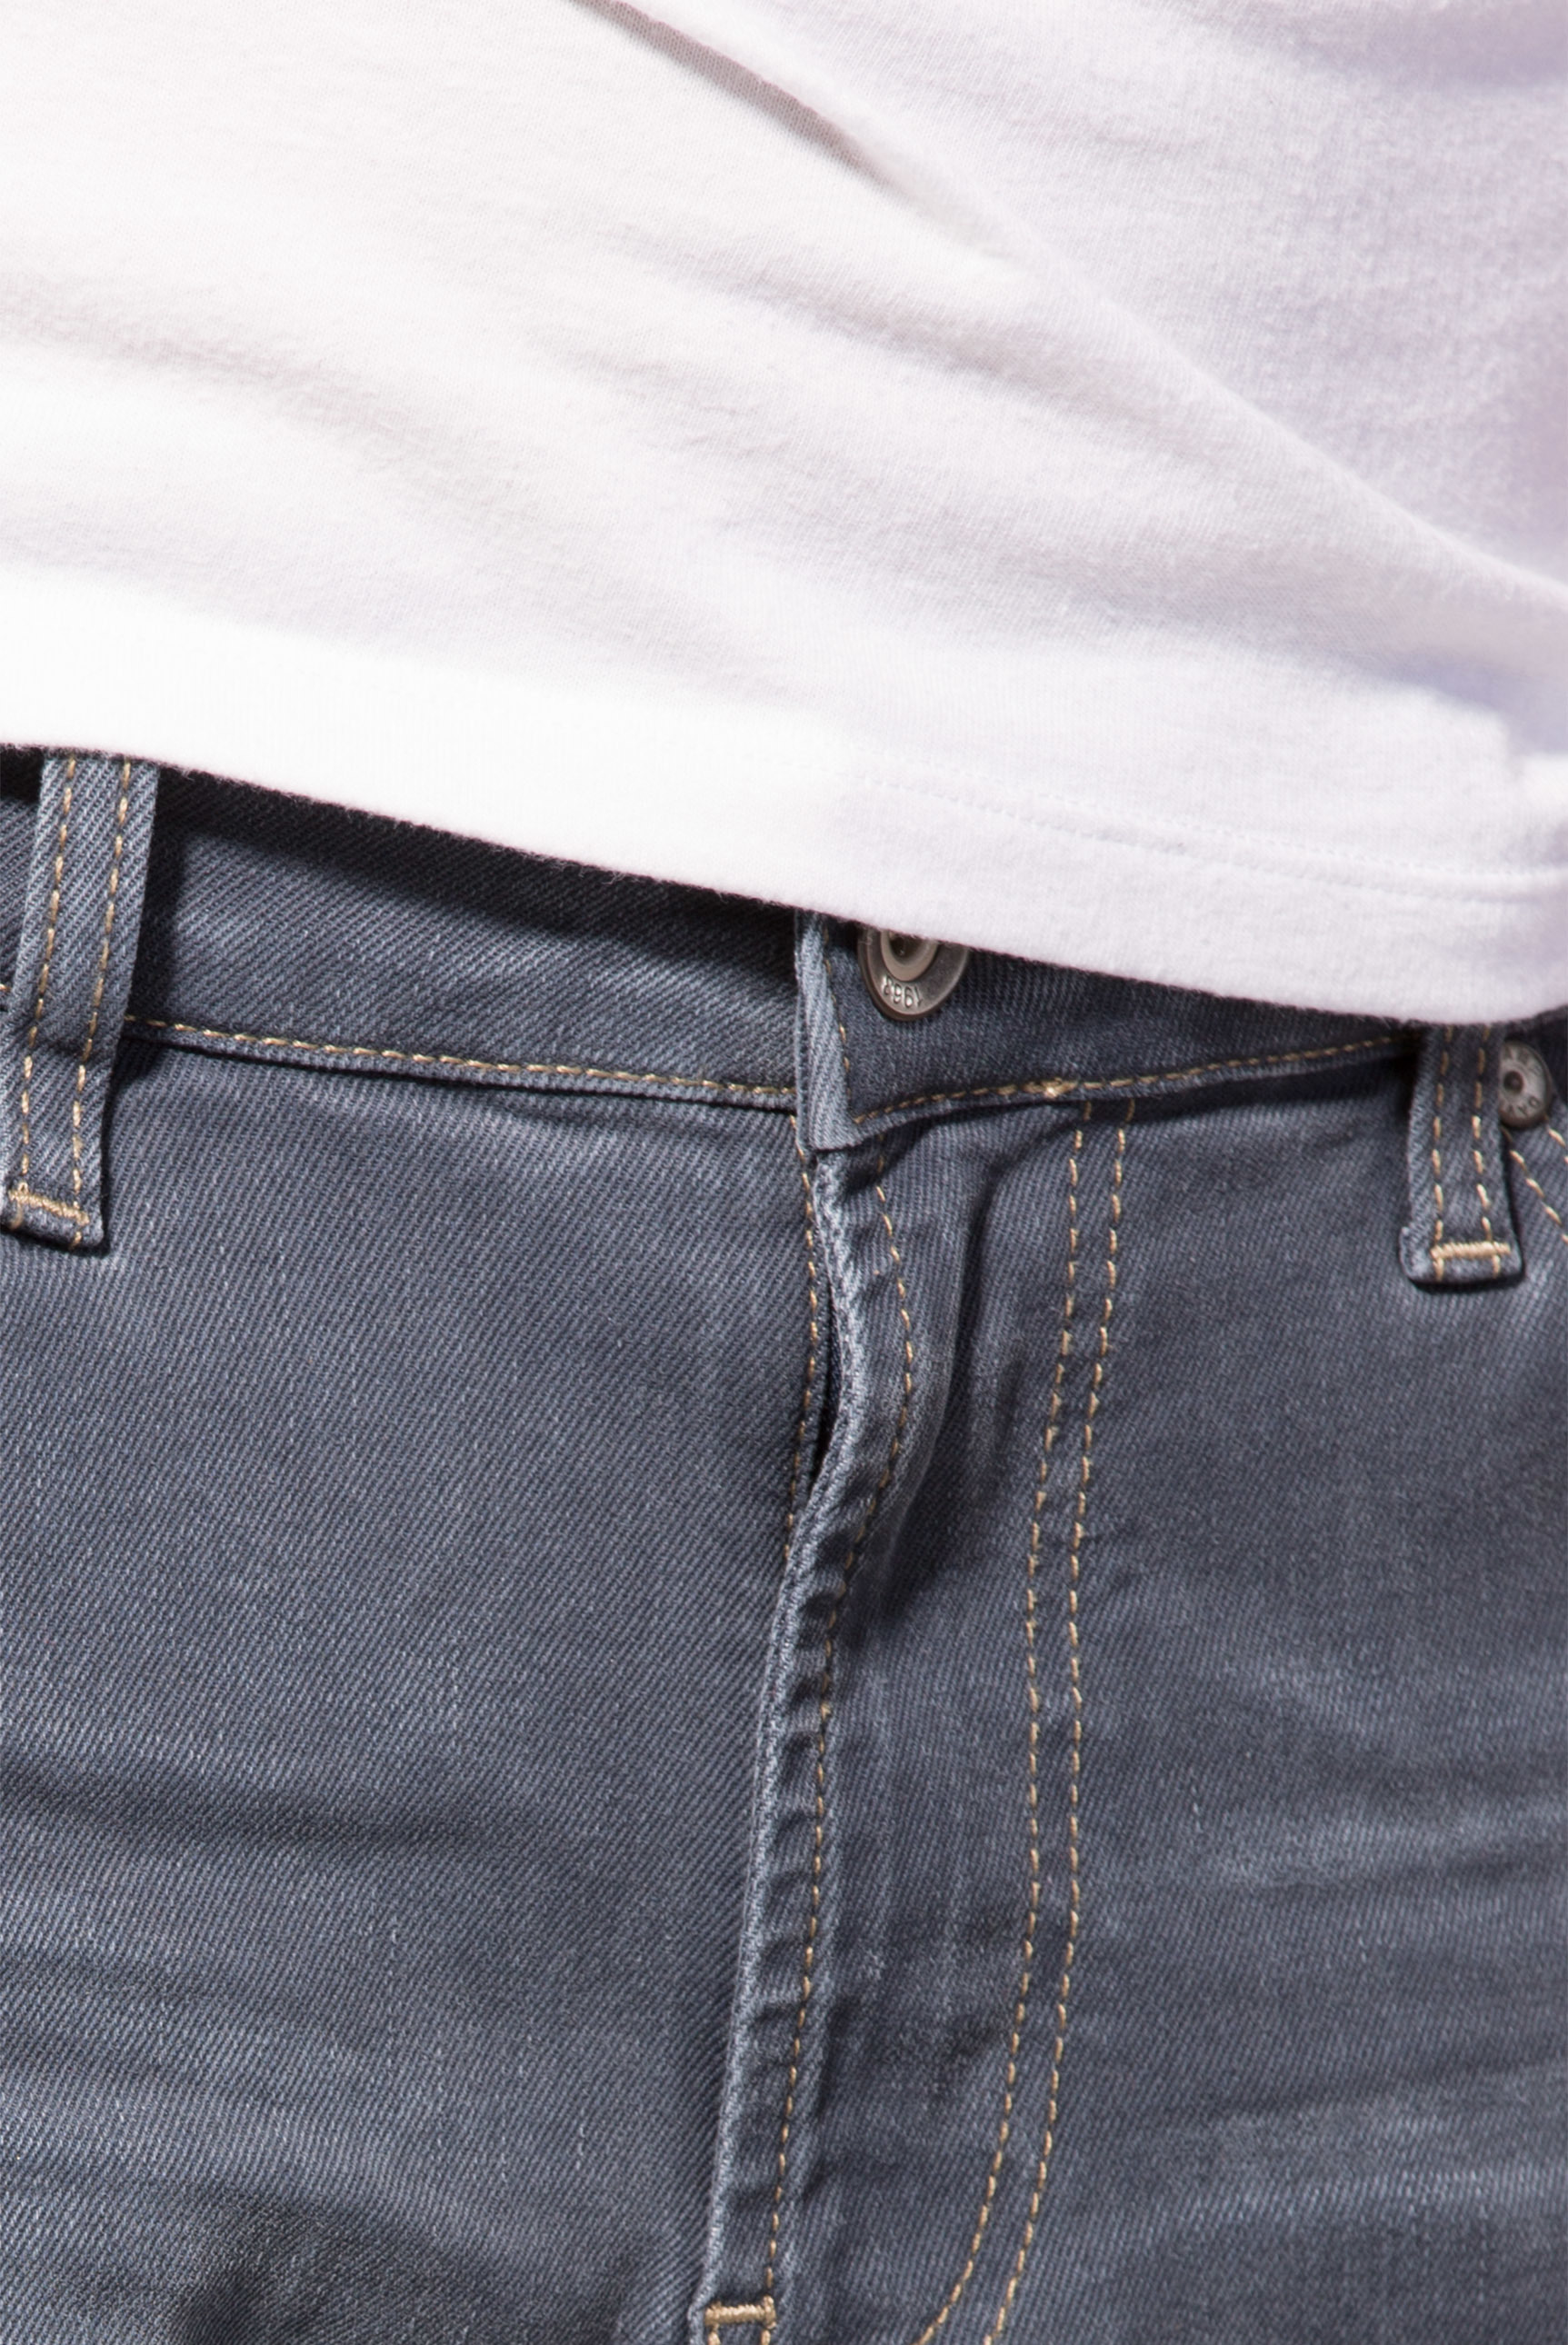 5-Pocket-Jeans NI:LS mit Used-Waschung